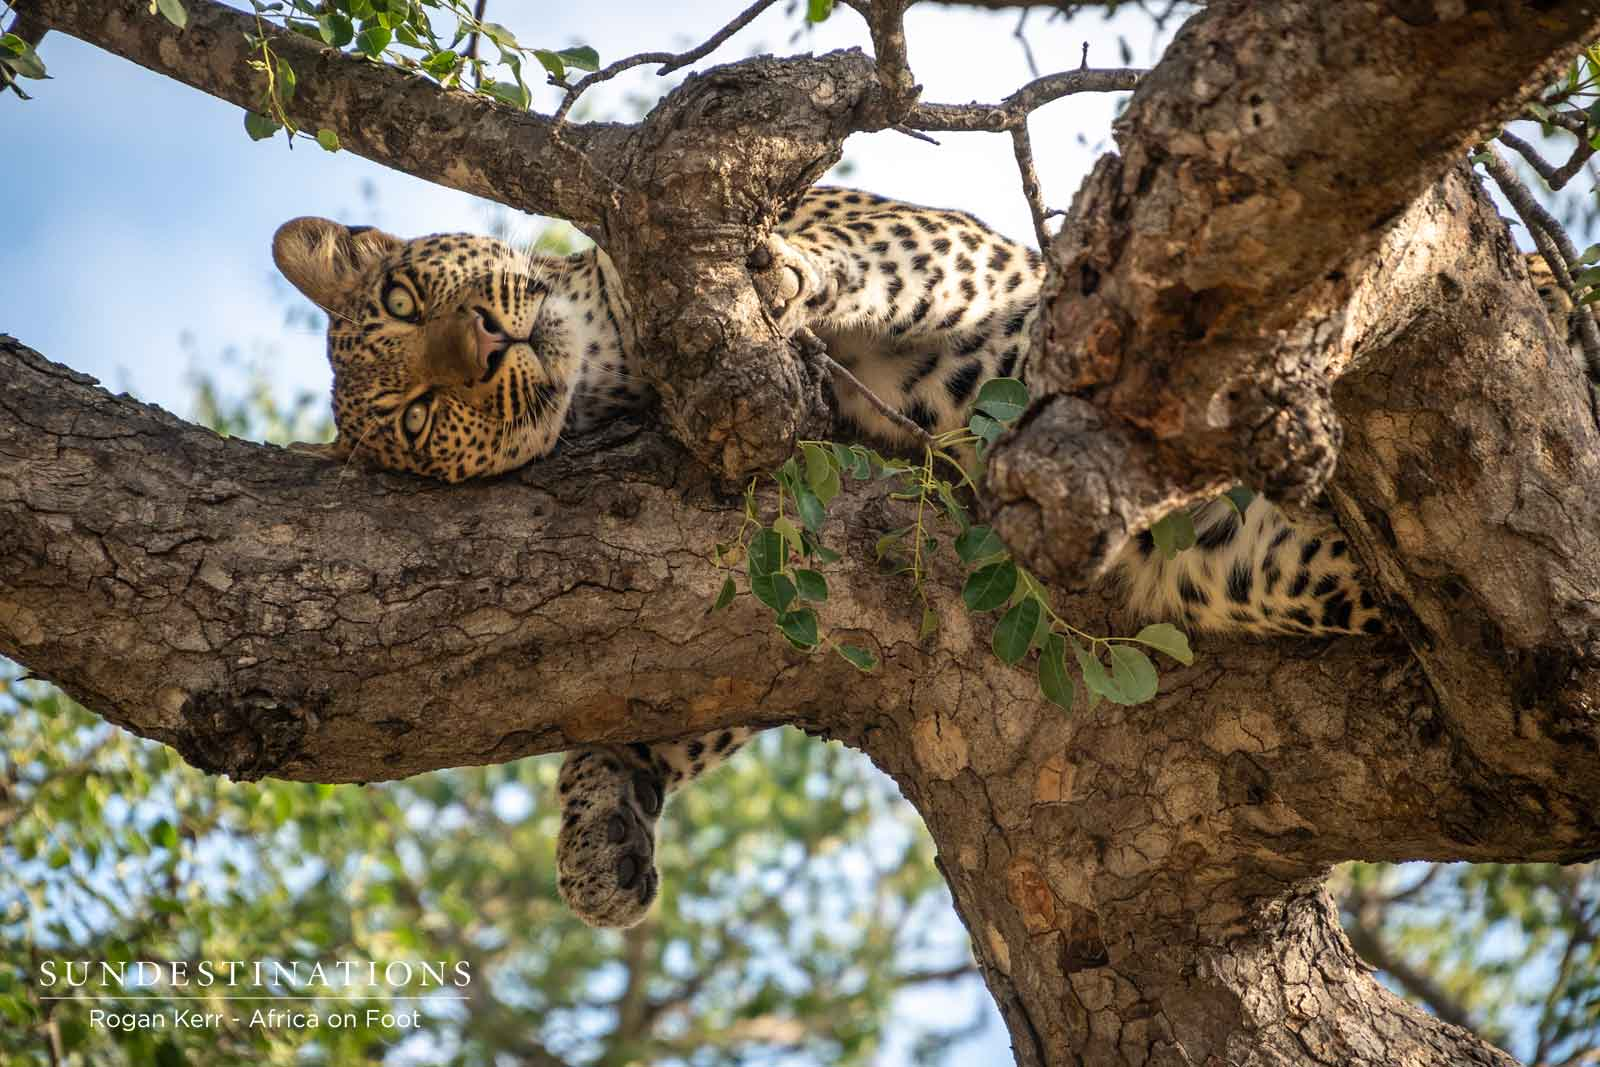 The Week in Pictures : Avian Delights, Big Cat Carnivals, and Lush Landscapes